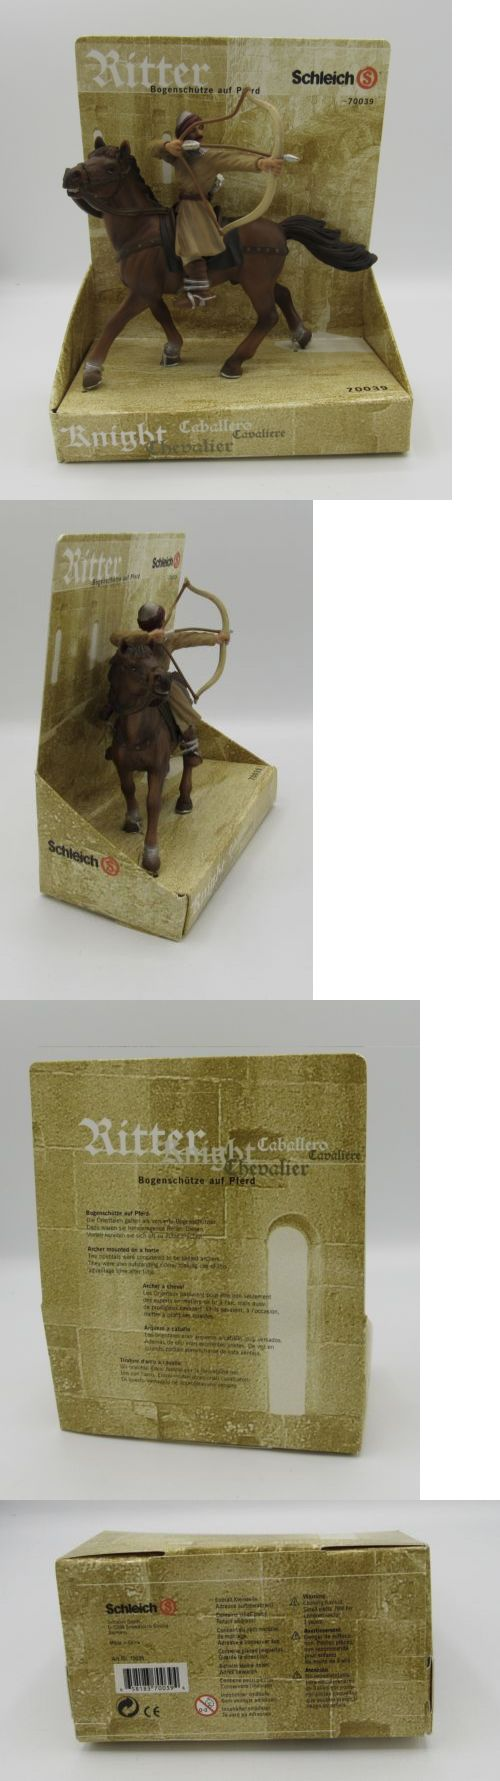 Historical Figures 175694: Nib Schleich Ritter Knight Rider Archer On Horse 70039 -> BUY IT NOW ONLY: $34.53 on eBay!